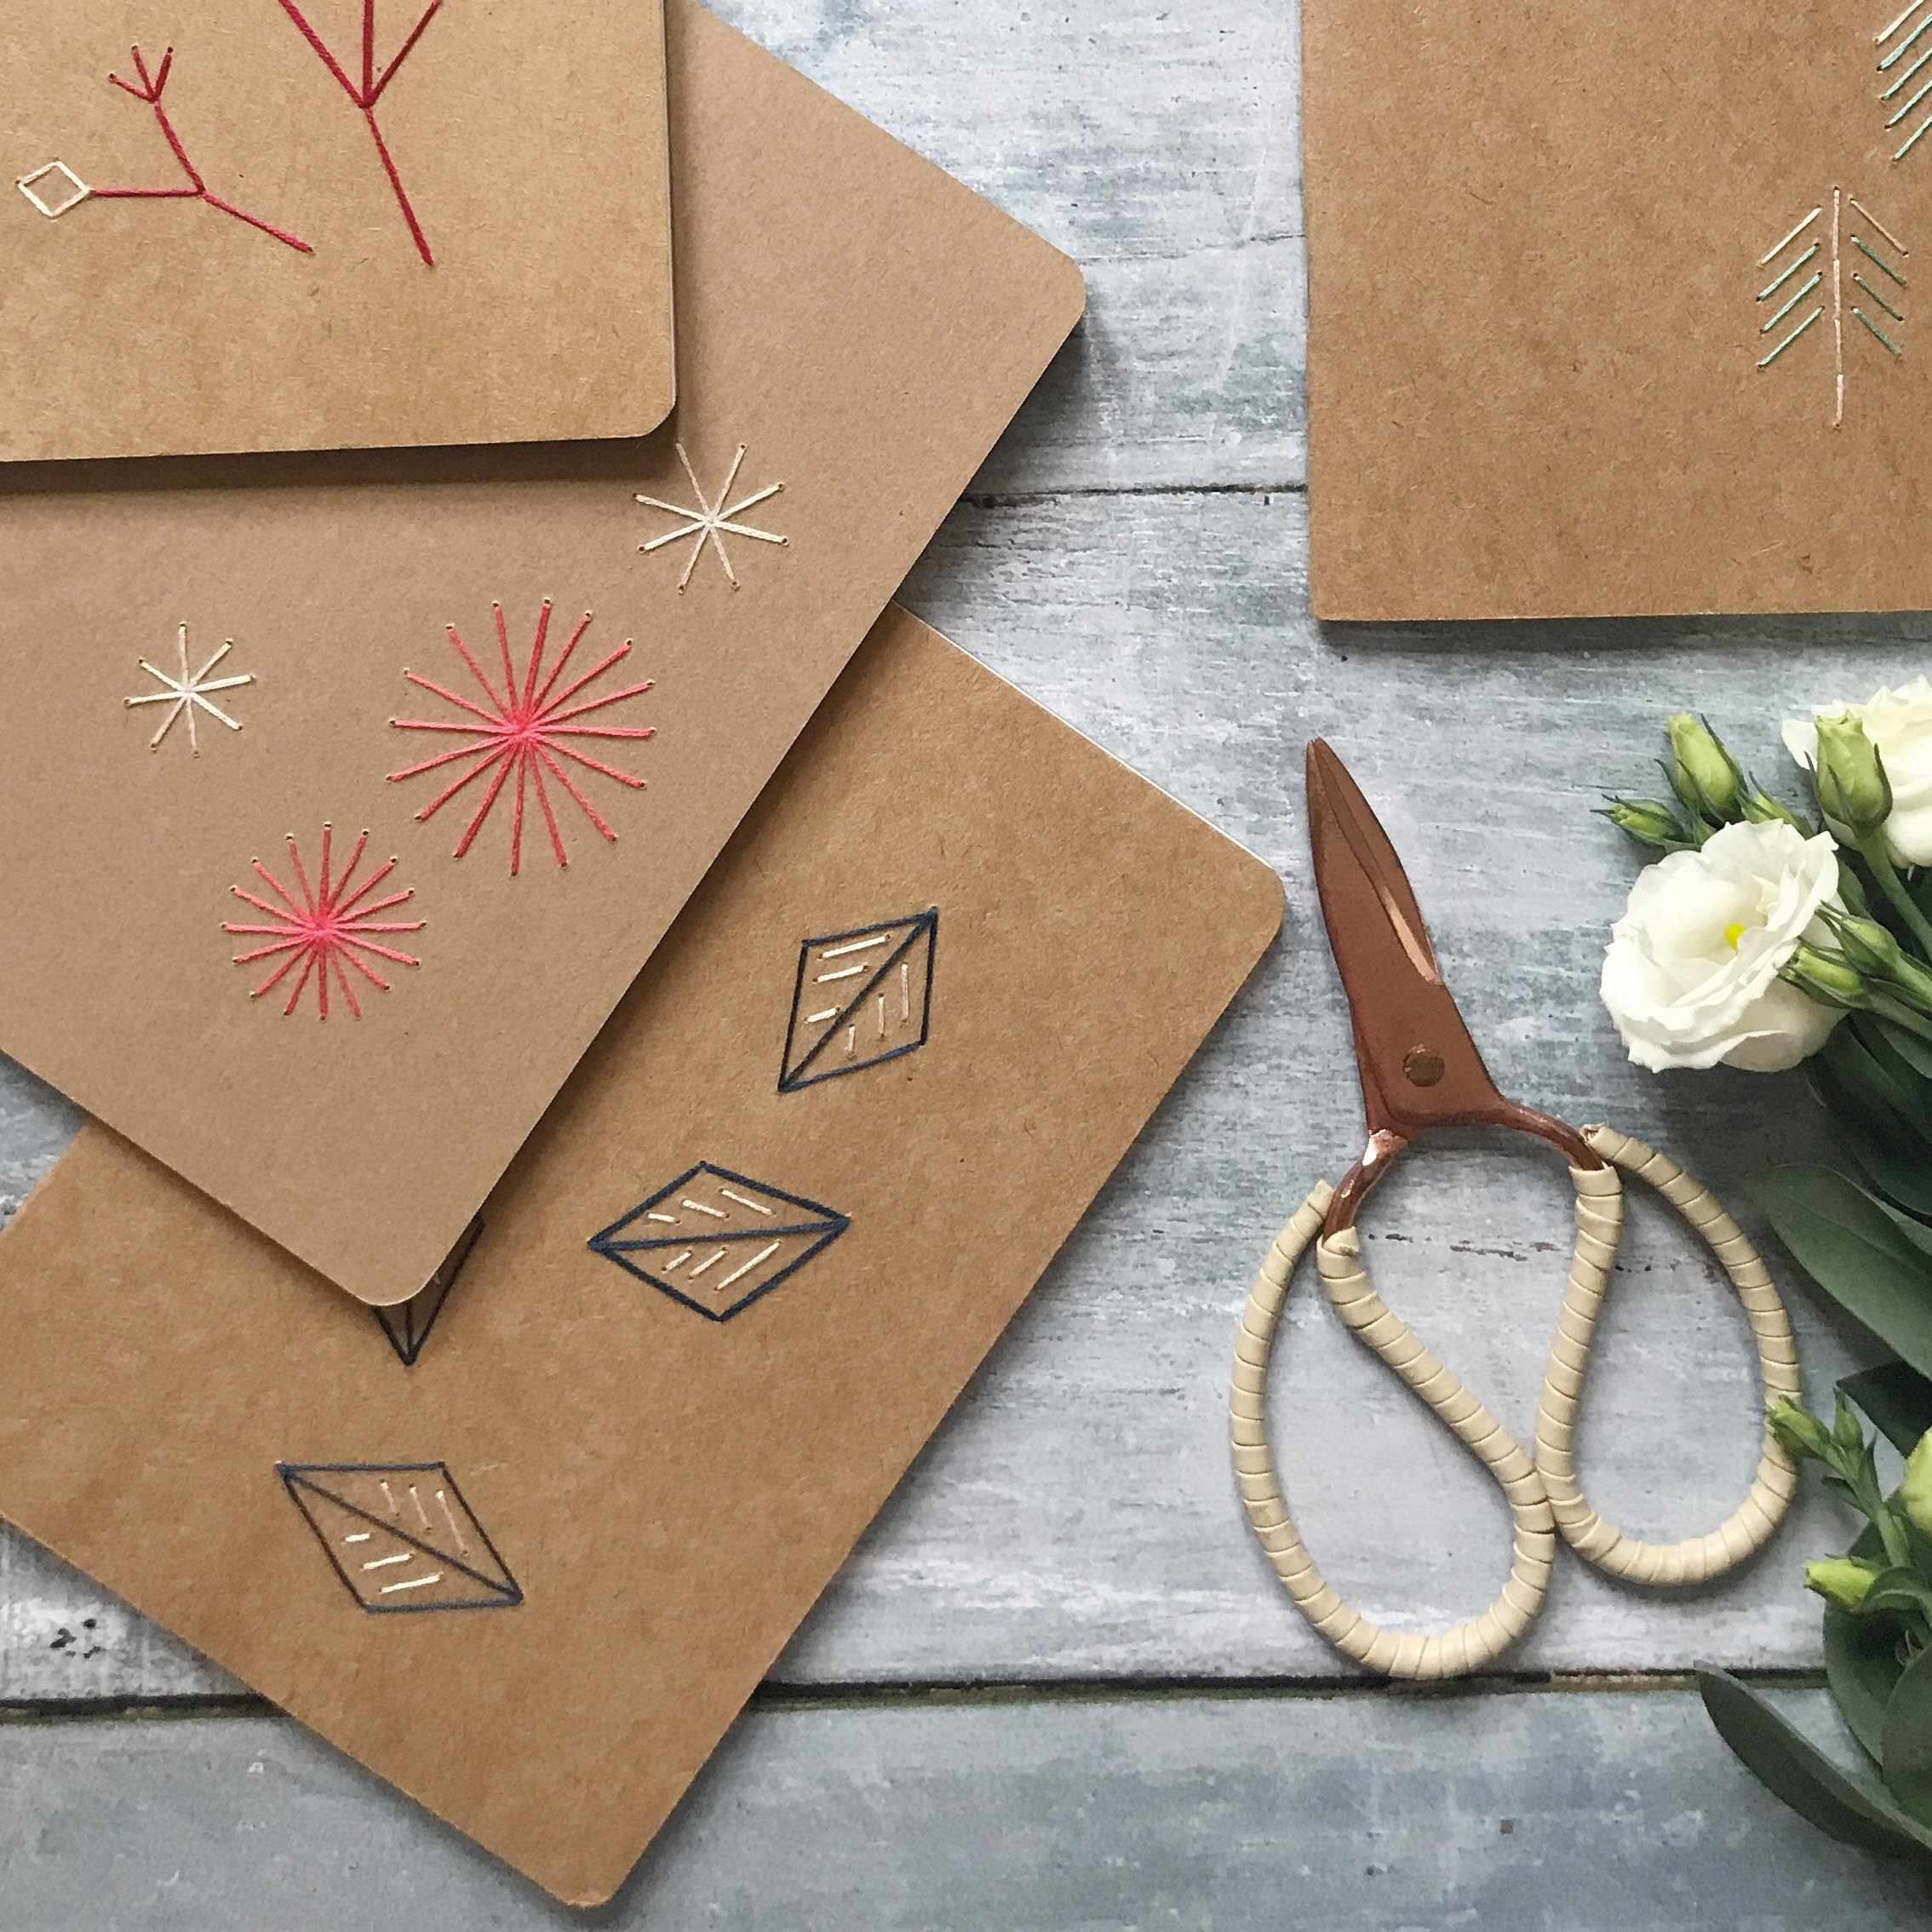 Free stitched notebooks project from In The Moment Magazine